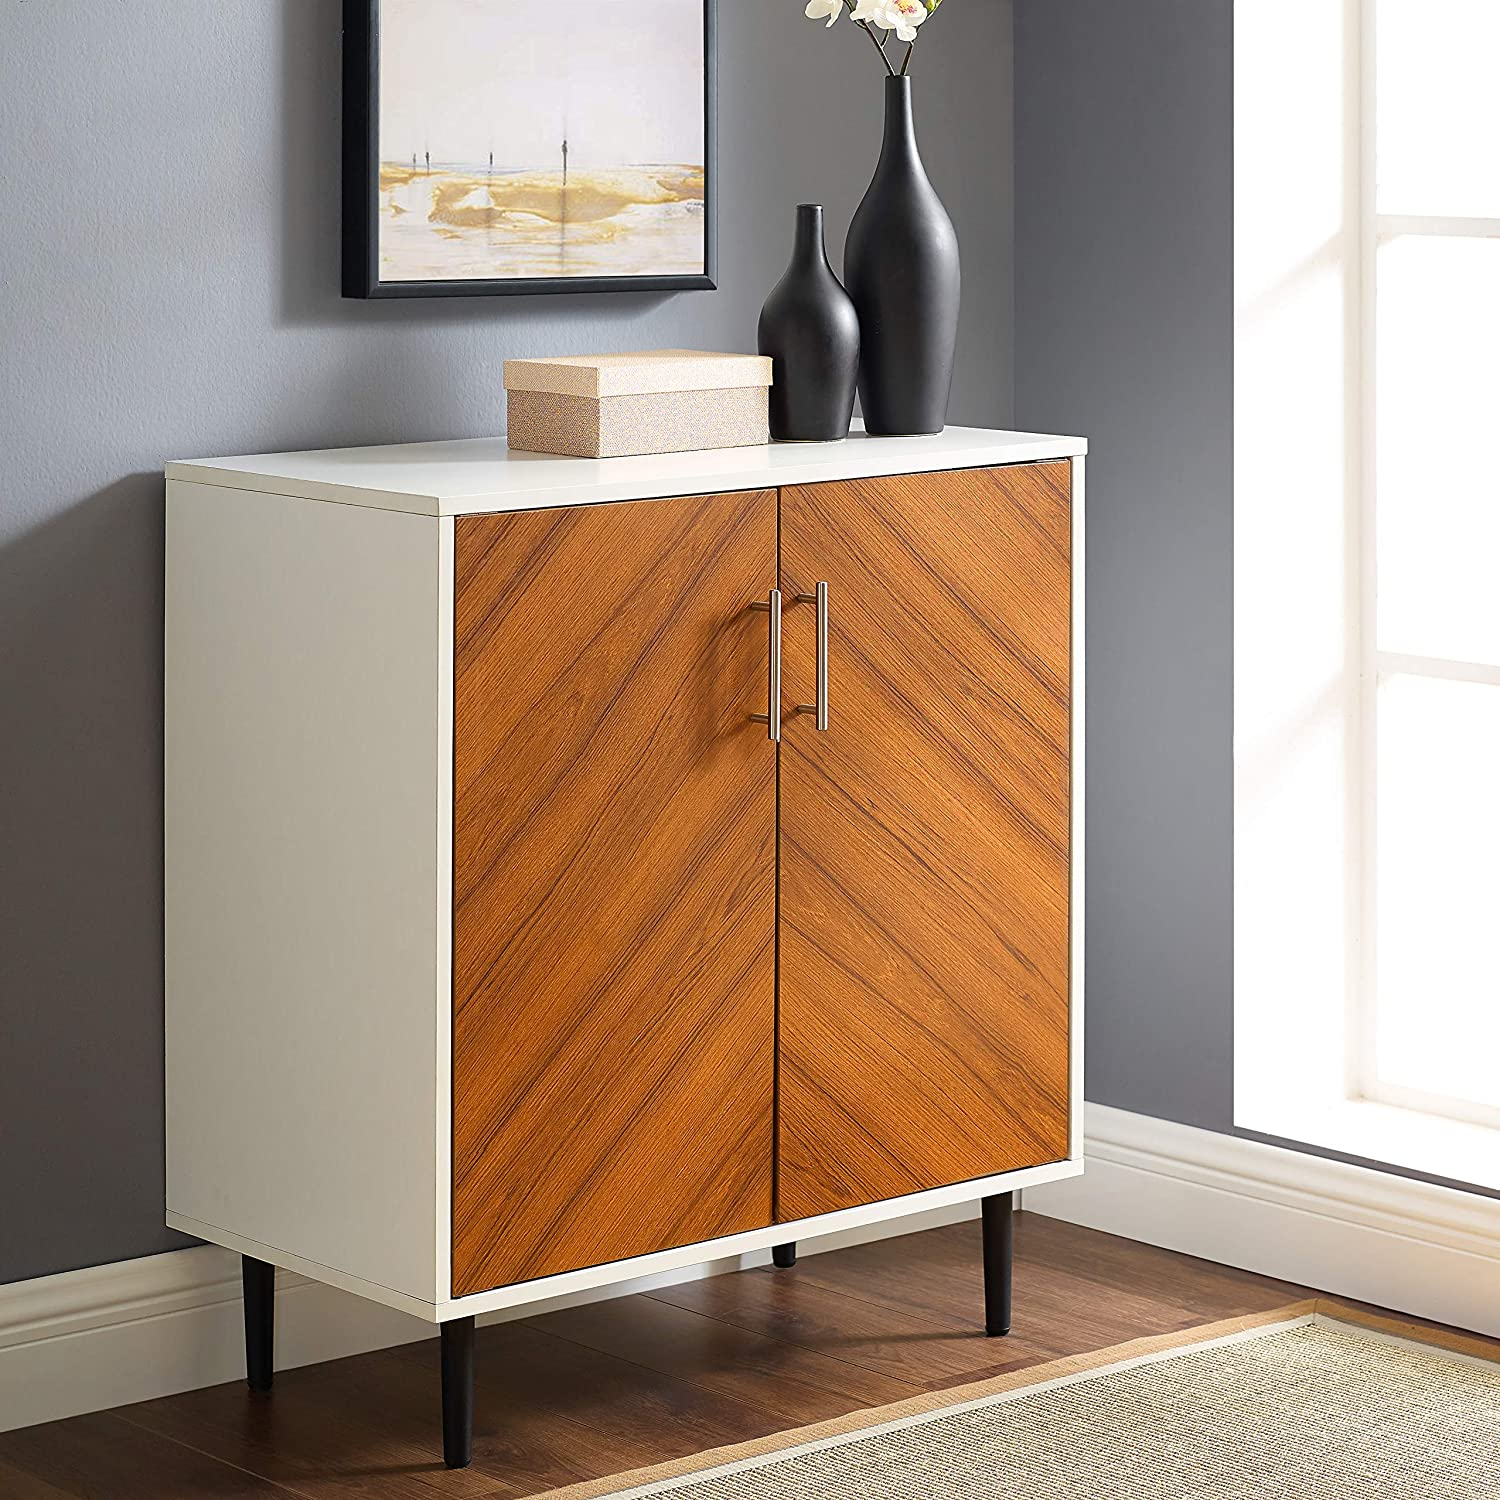 Walker Edison Furniture Company Mid Century Modern Bookmatched Kitchen Buffet Accent Entryway Bar Cabinet Storage Entry Table Living Dining Room, 28 Inch, White